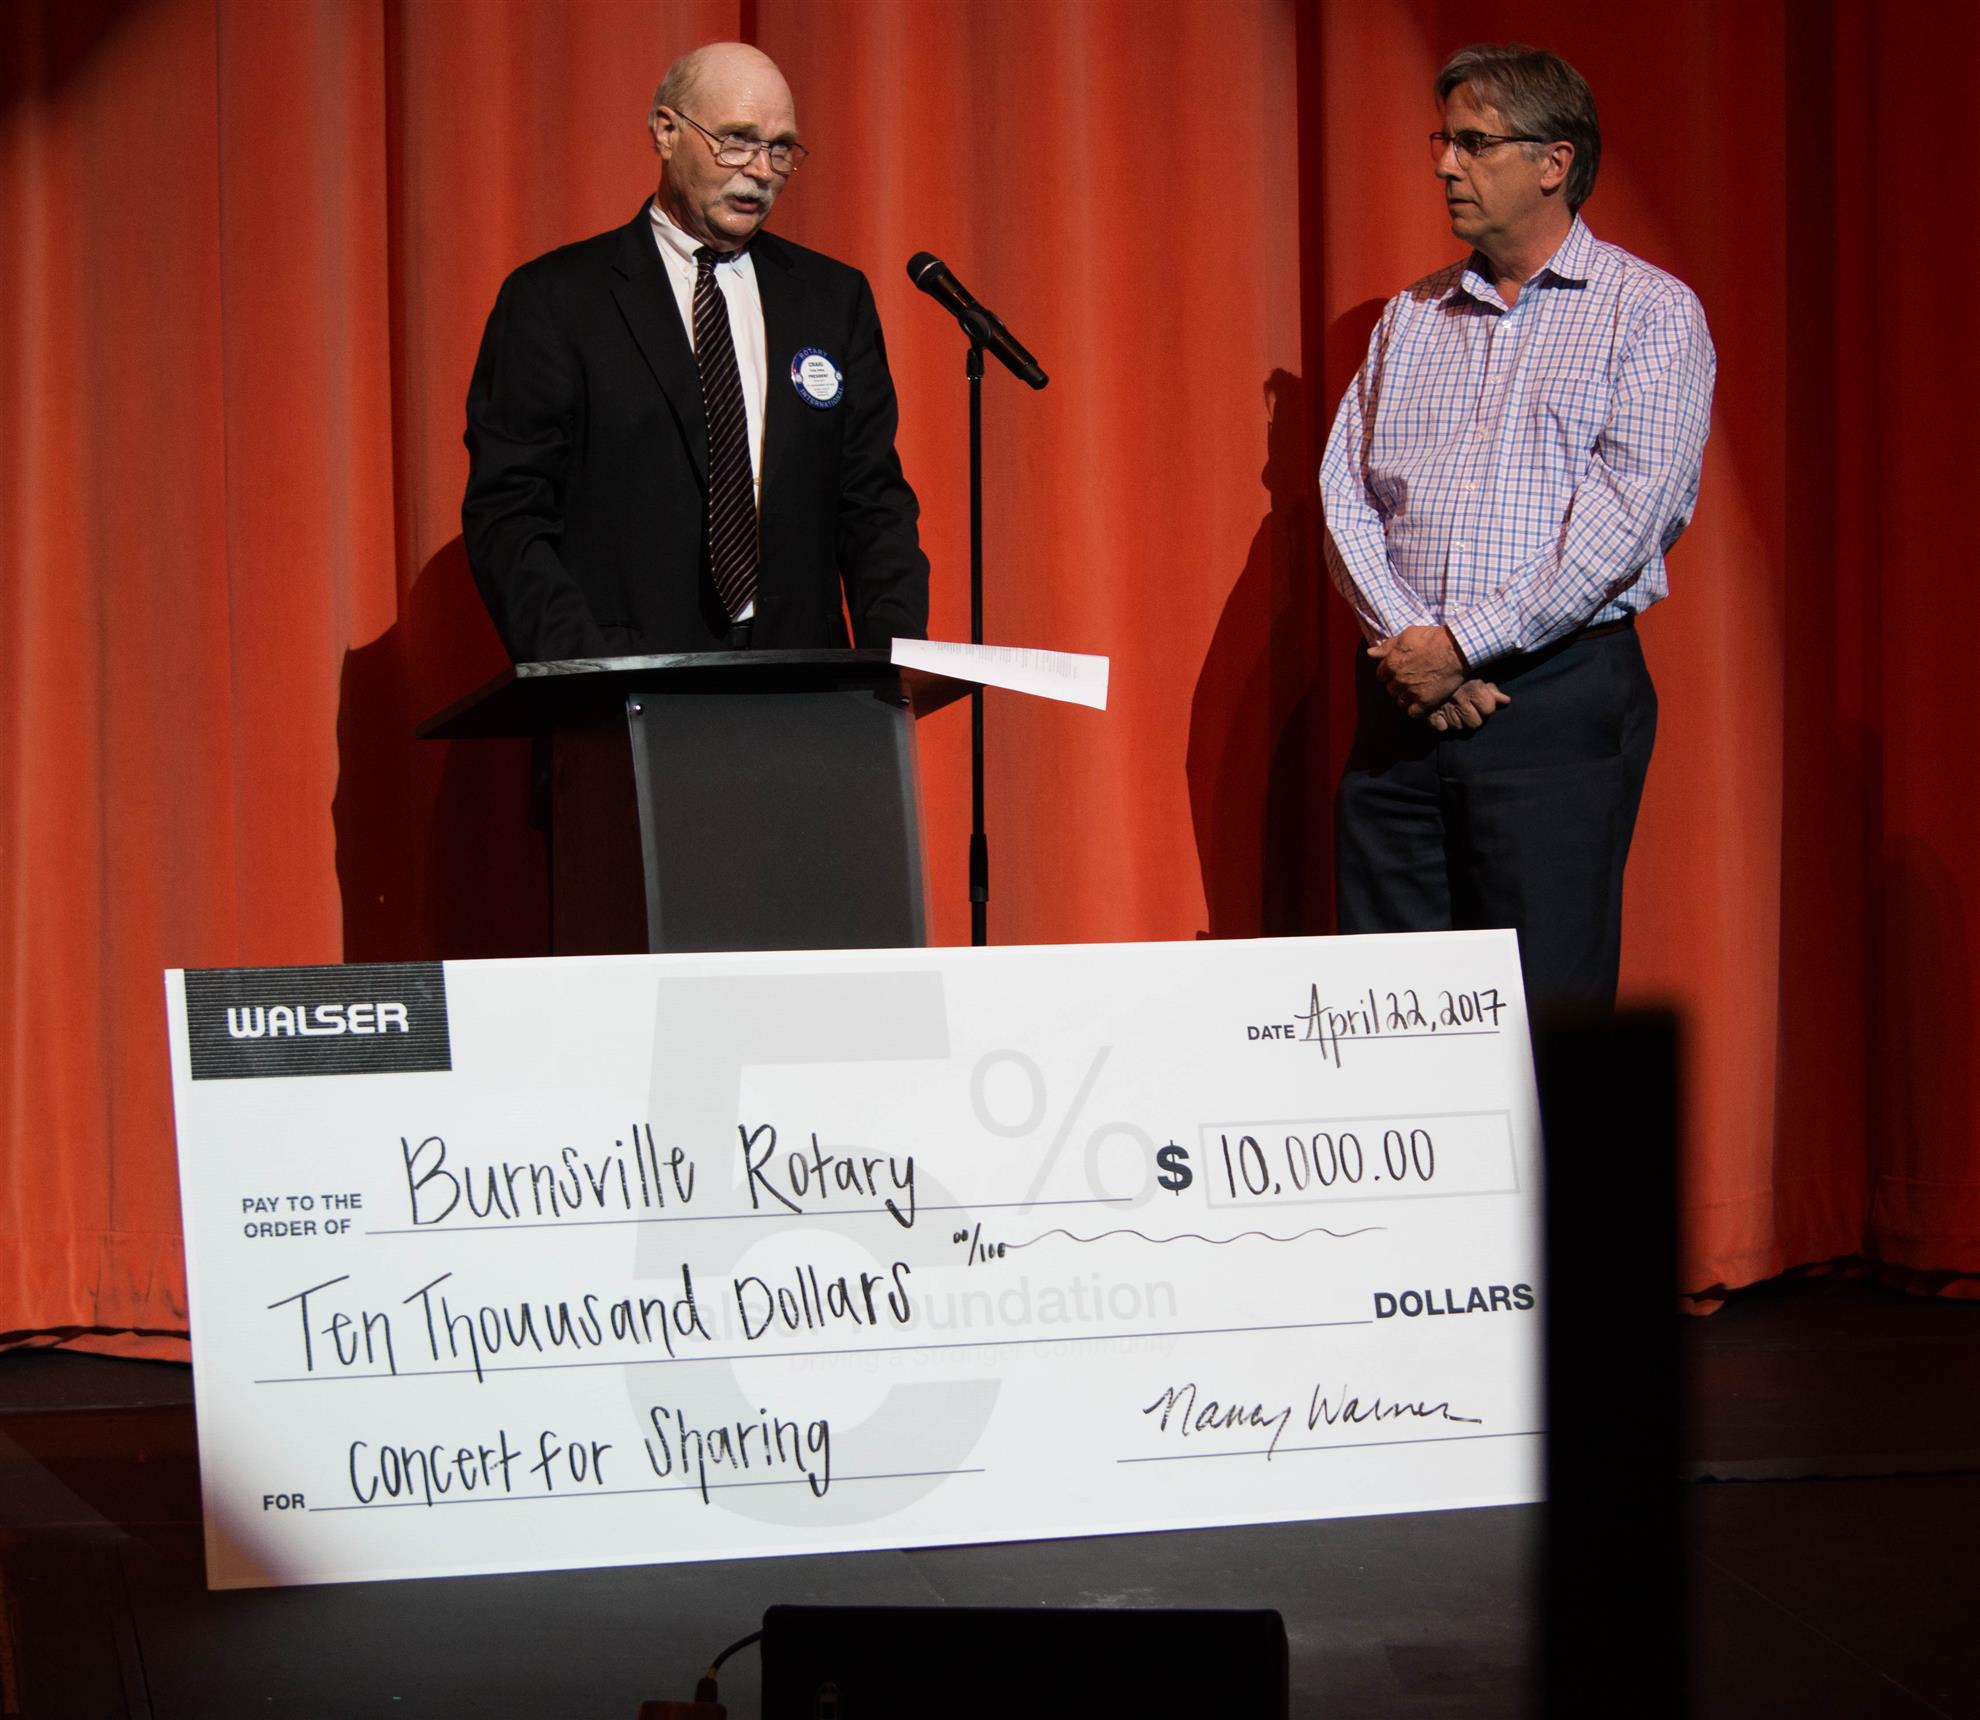 Burnsville Rotary receives check from Walser for Concert for Caring